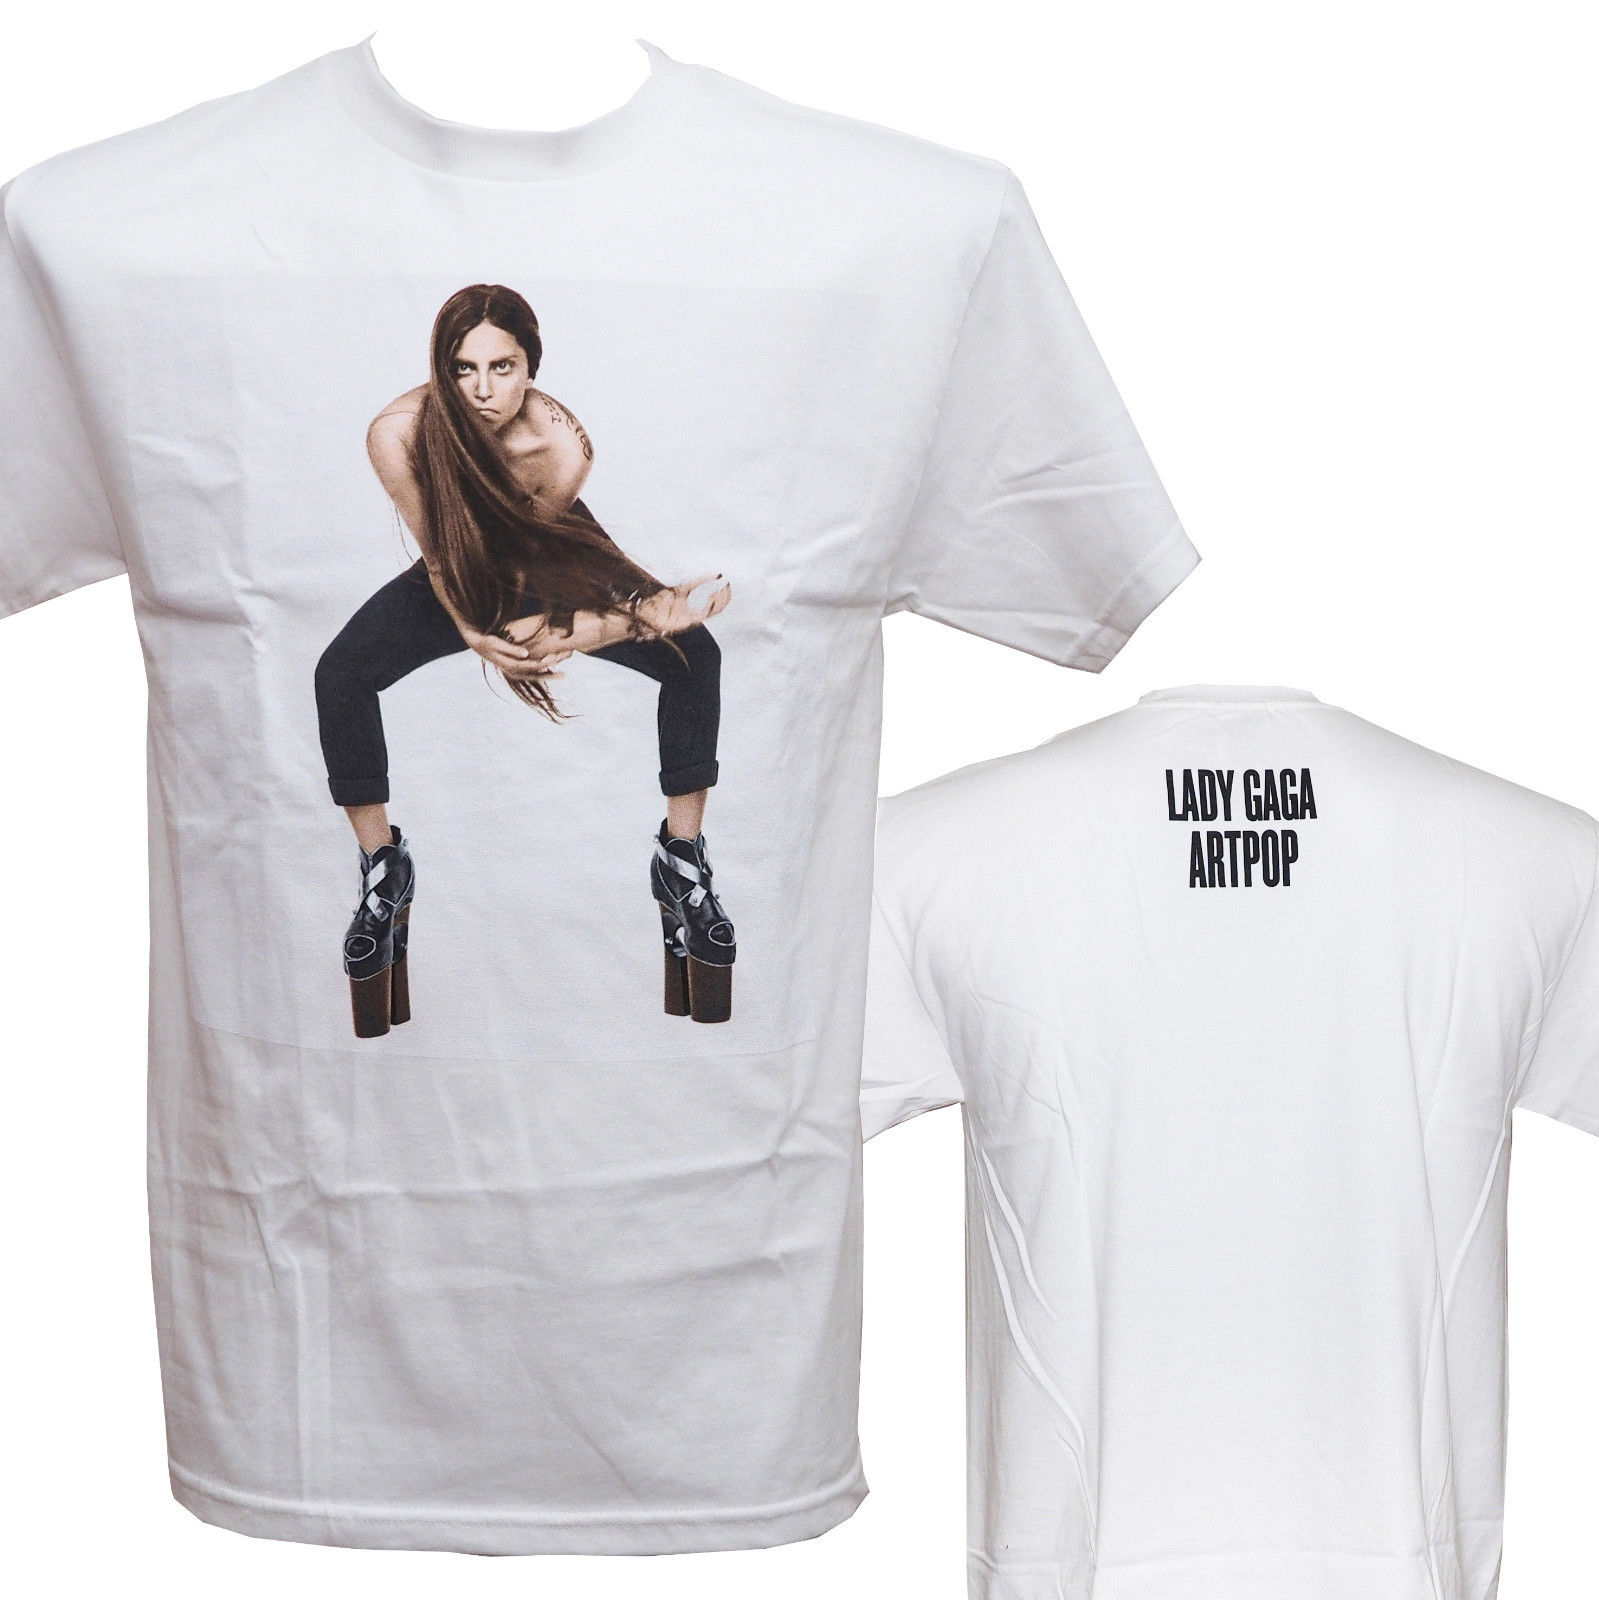 LADY GAGA - ARTPOP THE ARM - Official Licensed T-Shirt - New M L XL